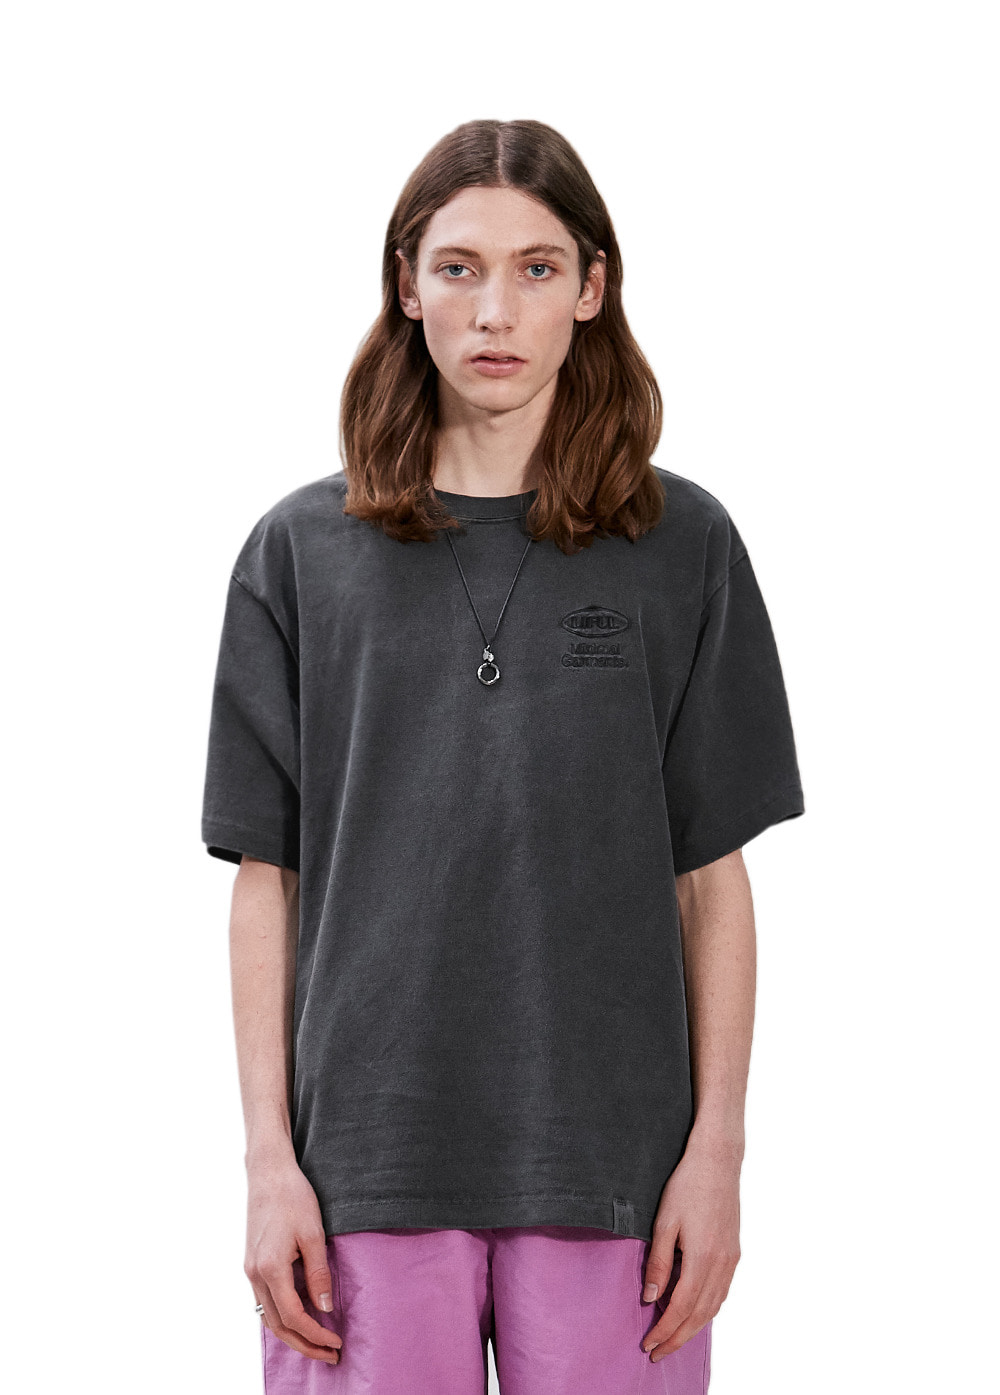 P-DYED OVAL LOGO TEE black